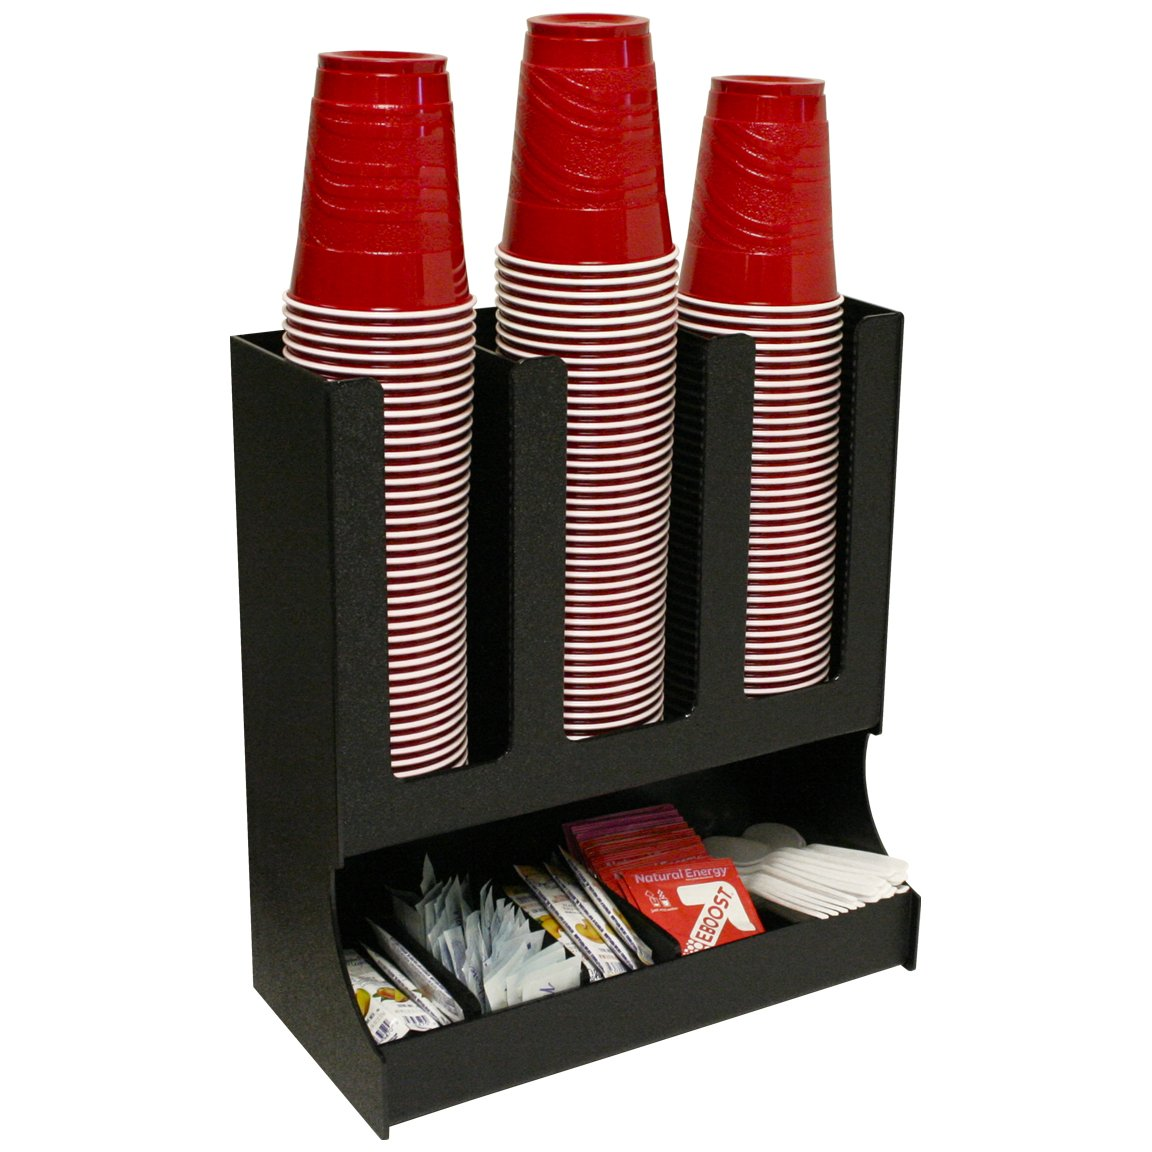 Coffee or Solo Cup Organizer With 3 Movable Dividers. Can Hold Powdered Drink Packets or Creamers and Sugars. Great for Office or At Home. Proudly Made in USA! and Made by PPM.